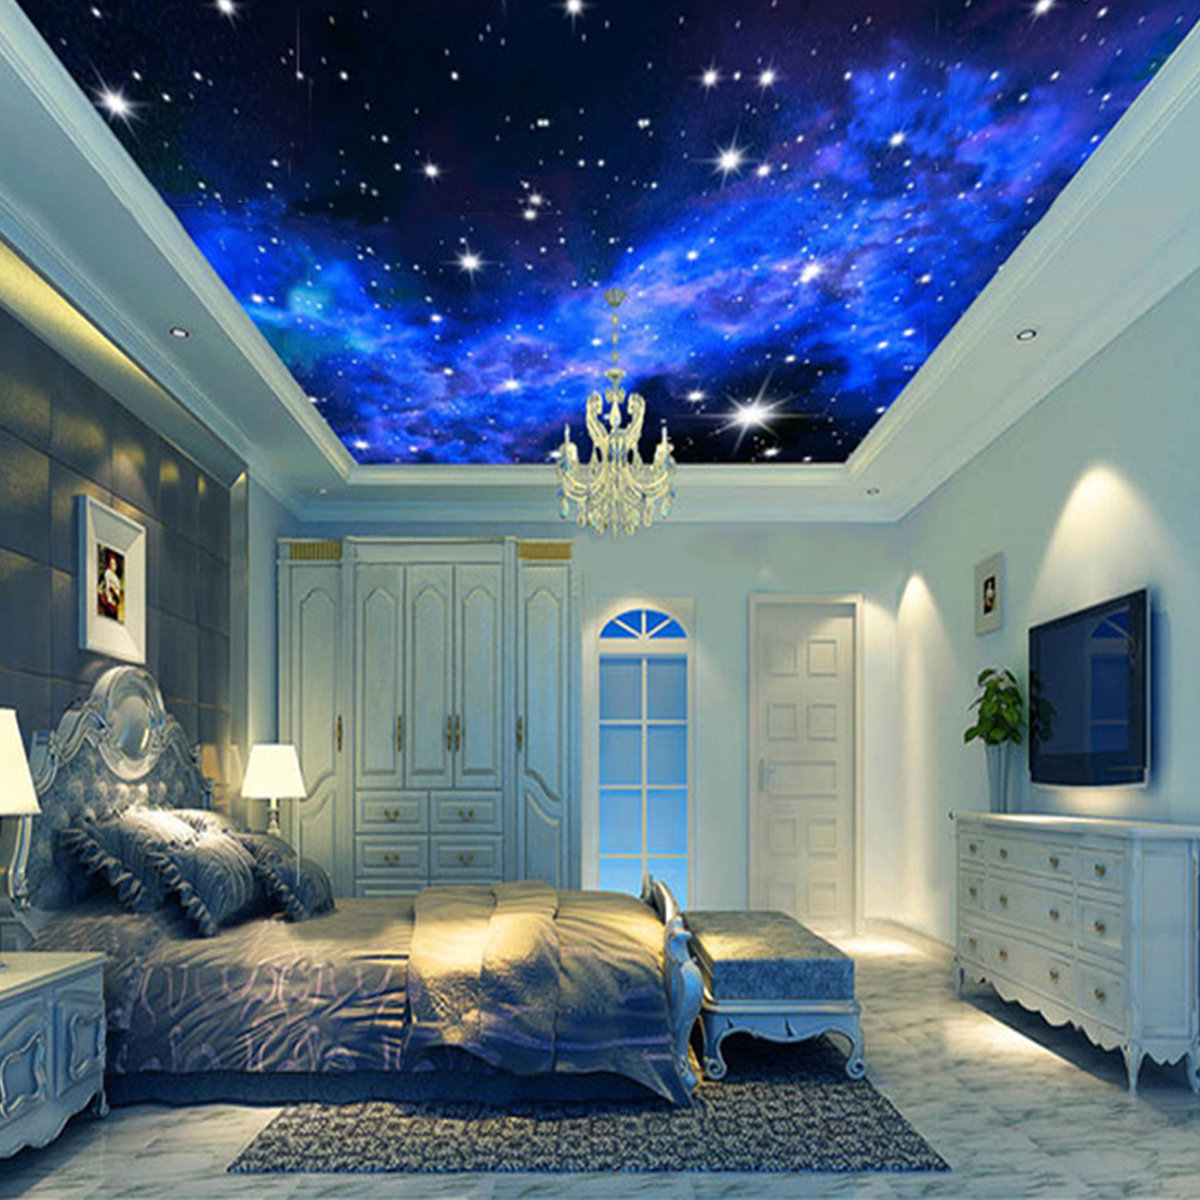 3d wallpaper mural night clouds star sky wall paper for Home interior design ideas wallpapers